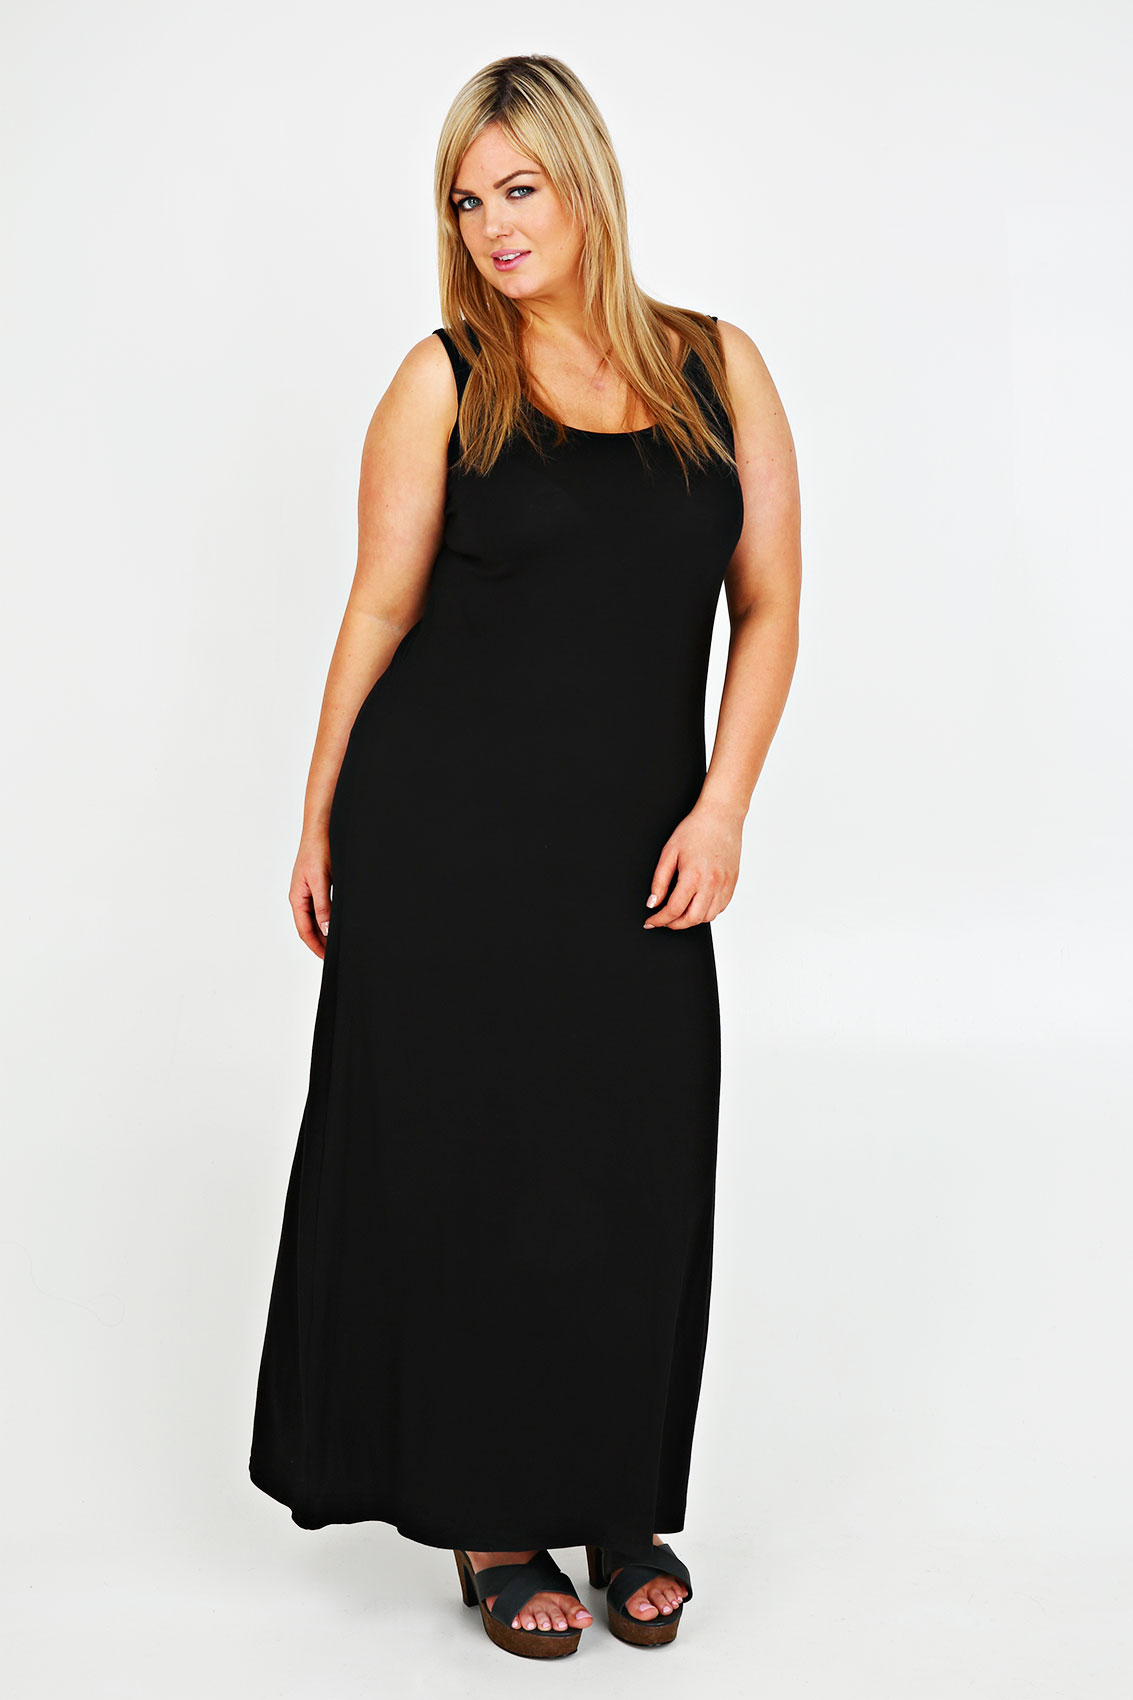 Browse DressHead's large selection of maxi dresses today! This season, go mad for our elegant maxi dresses for women. Sitewide Sale: % Off!